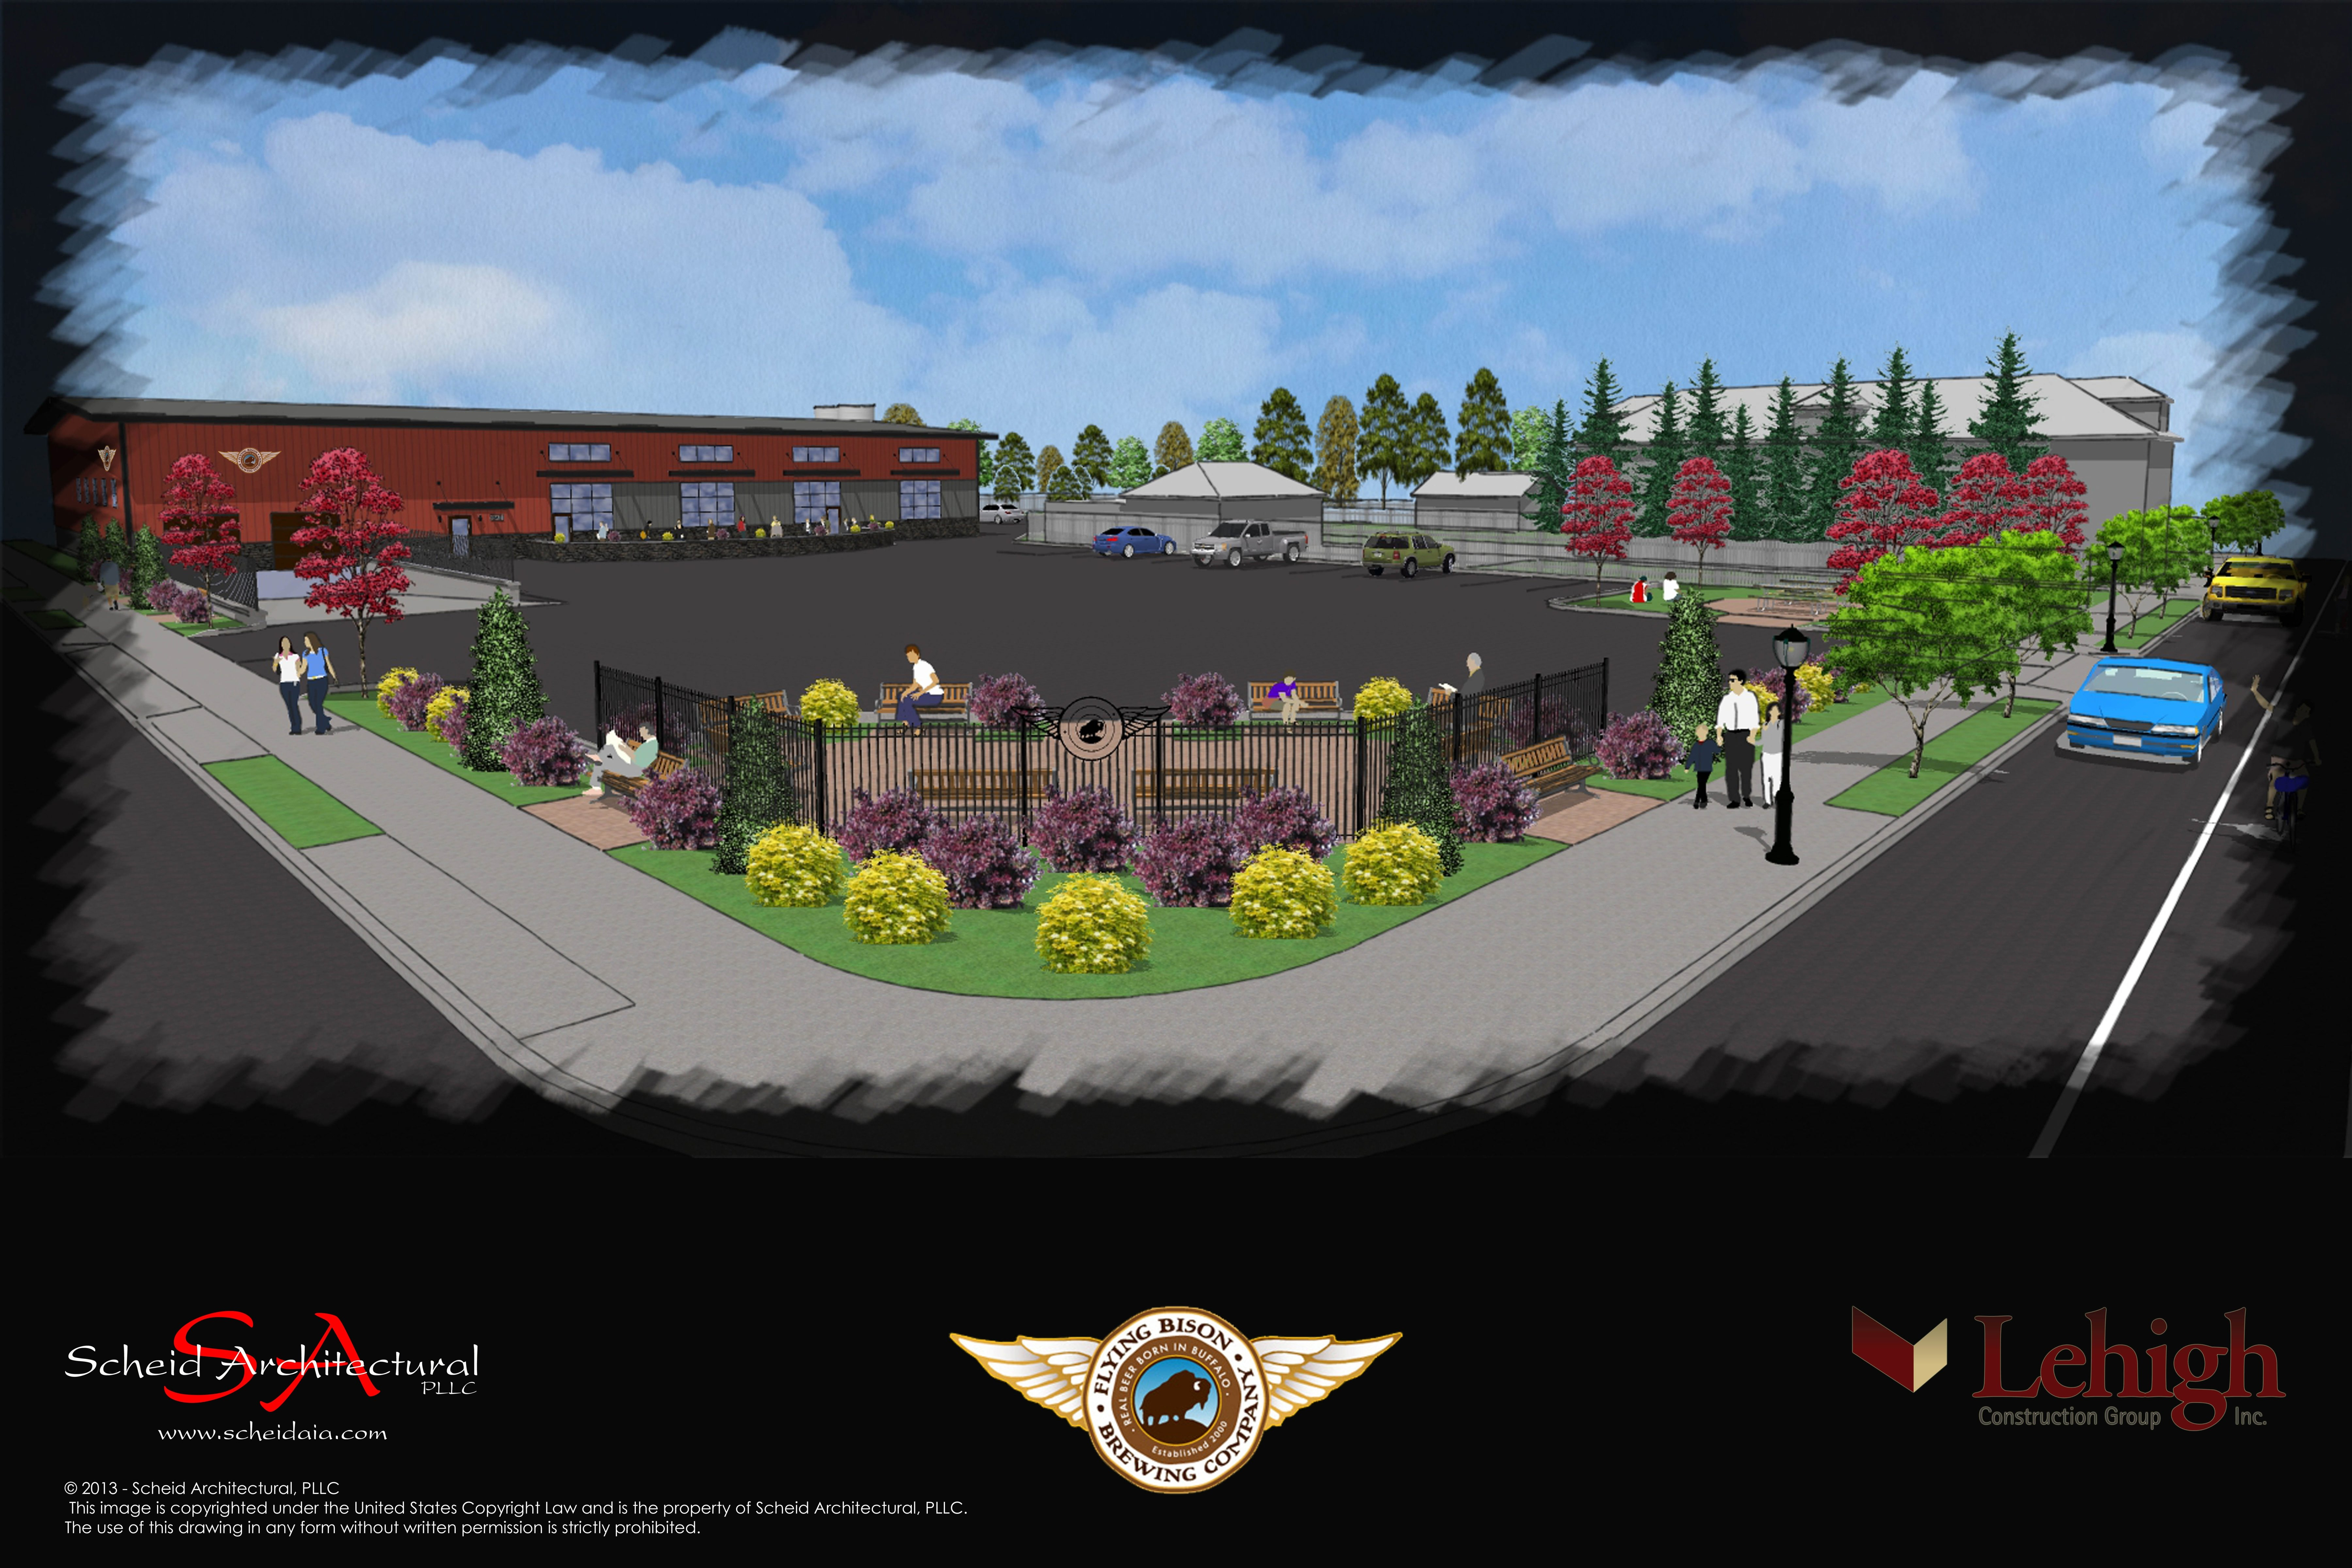 A rendering of the proposed 840 Seneca St. facility.